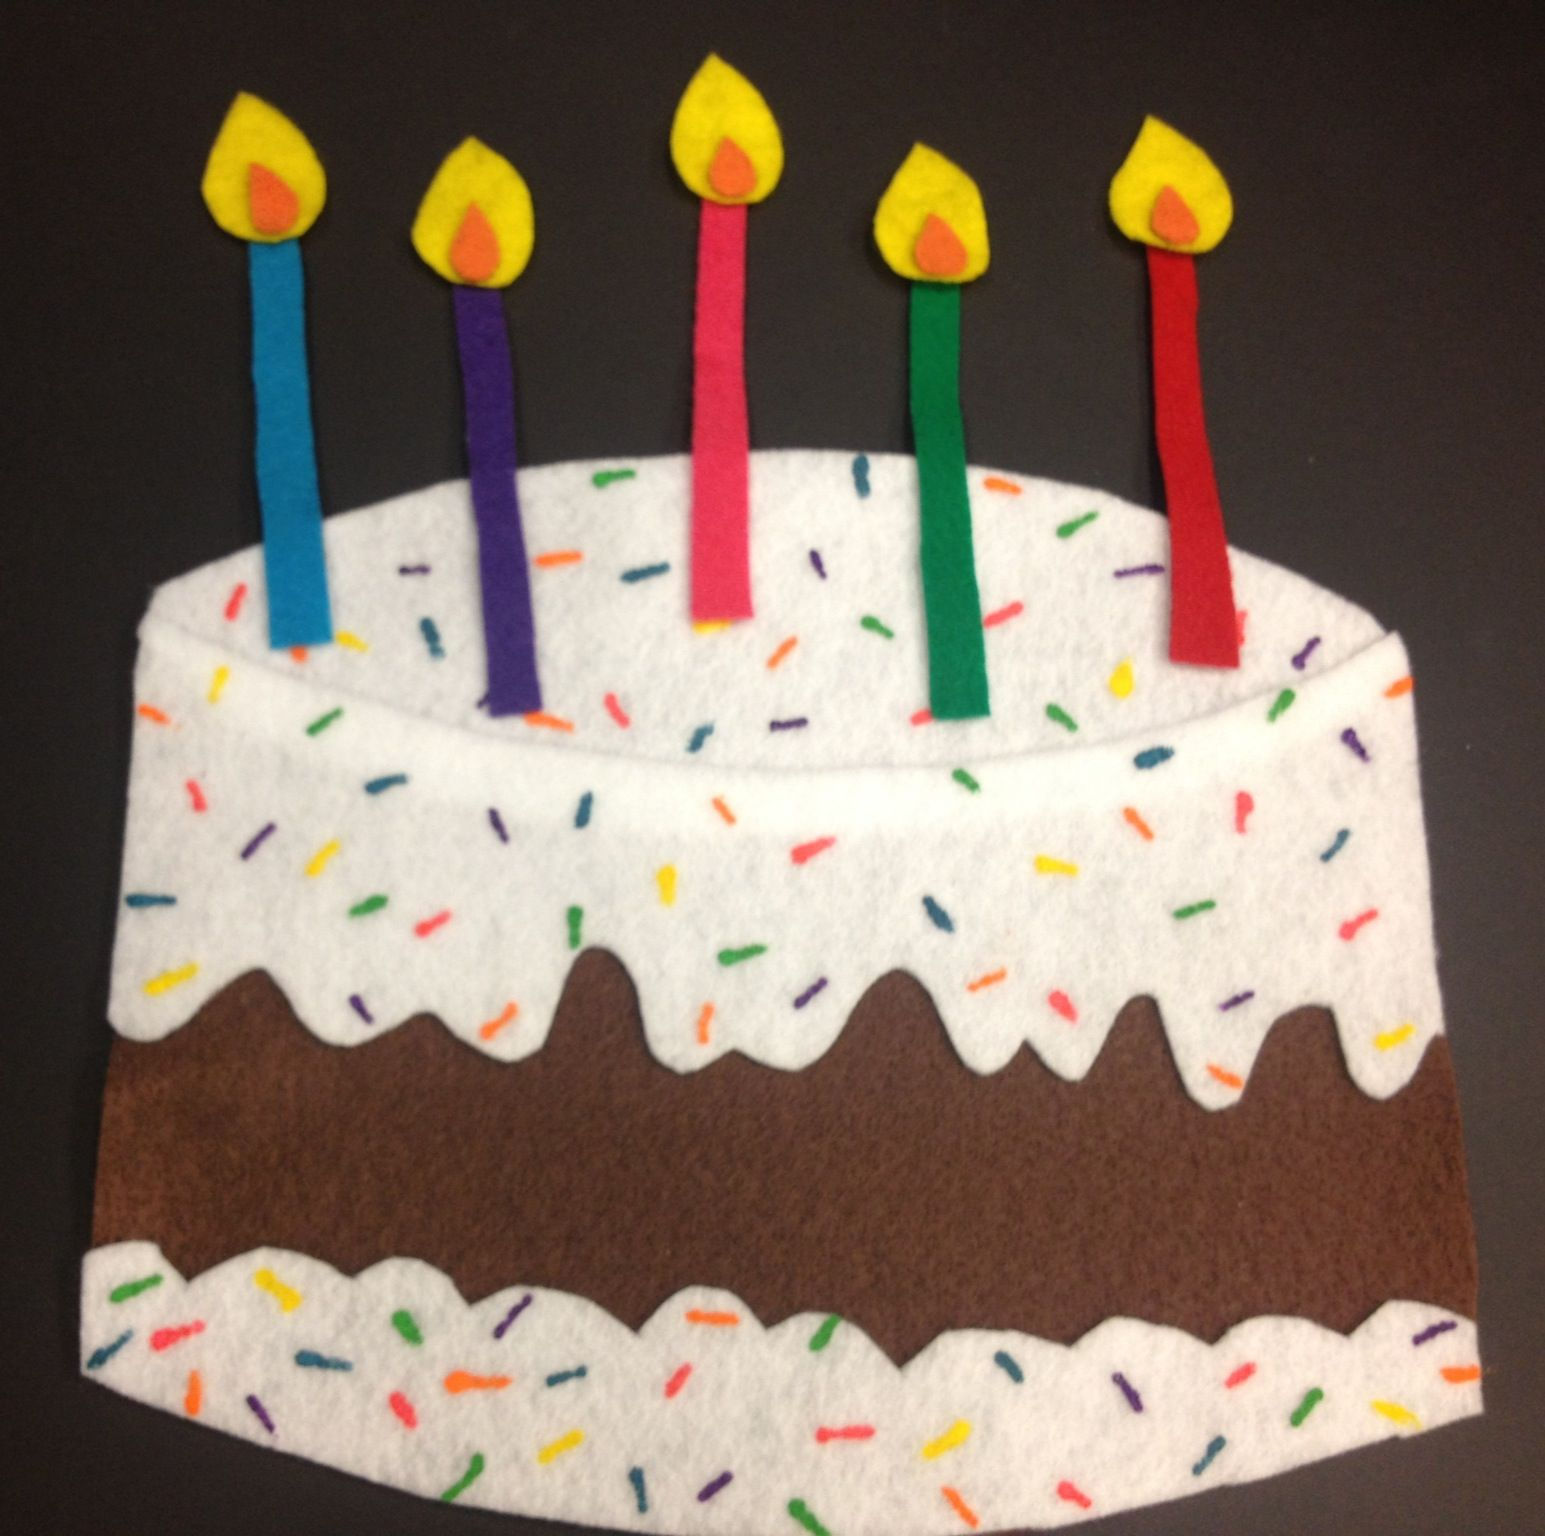 Flannel Friday: Five Birthday Candles